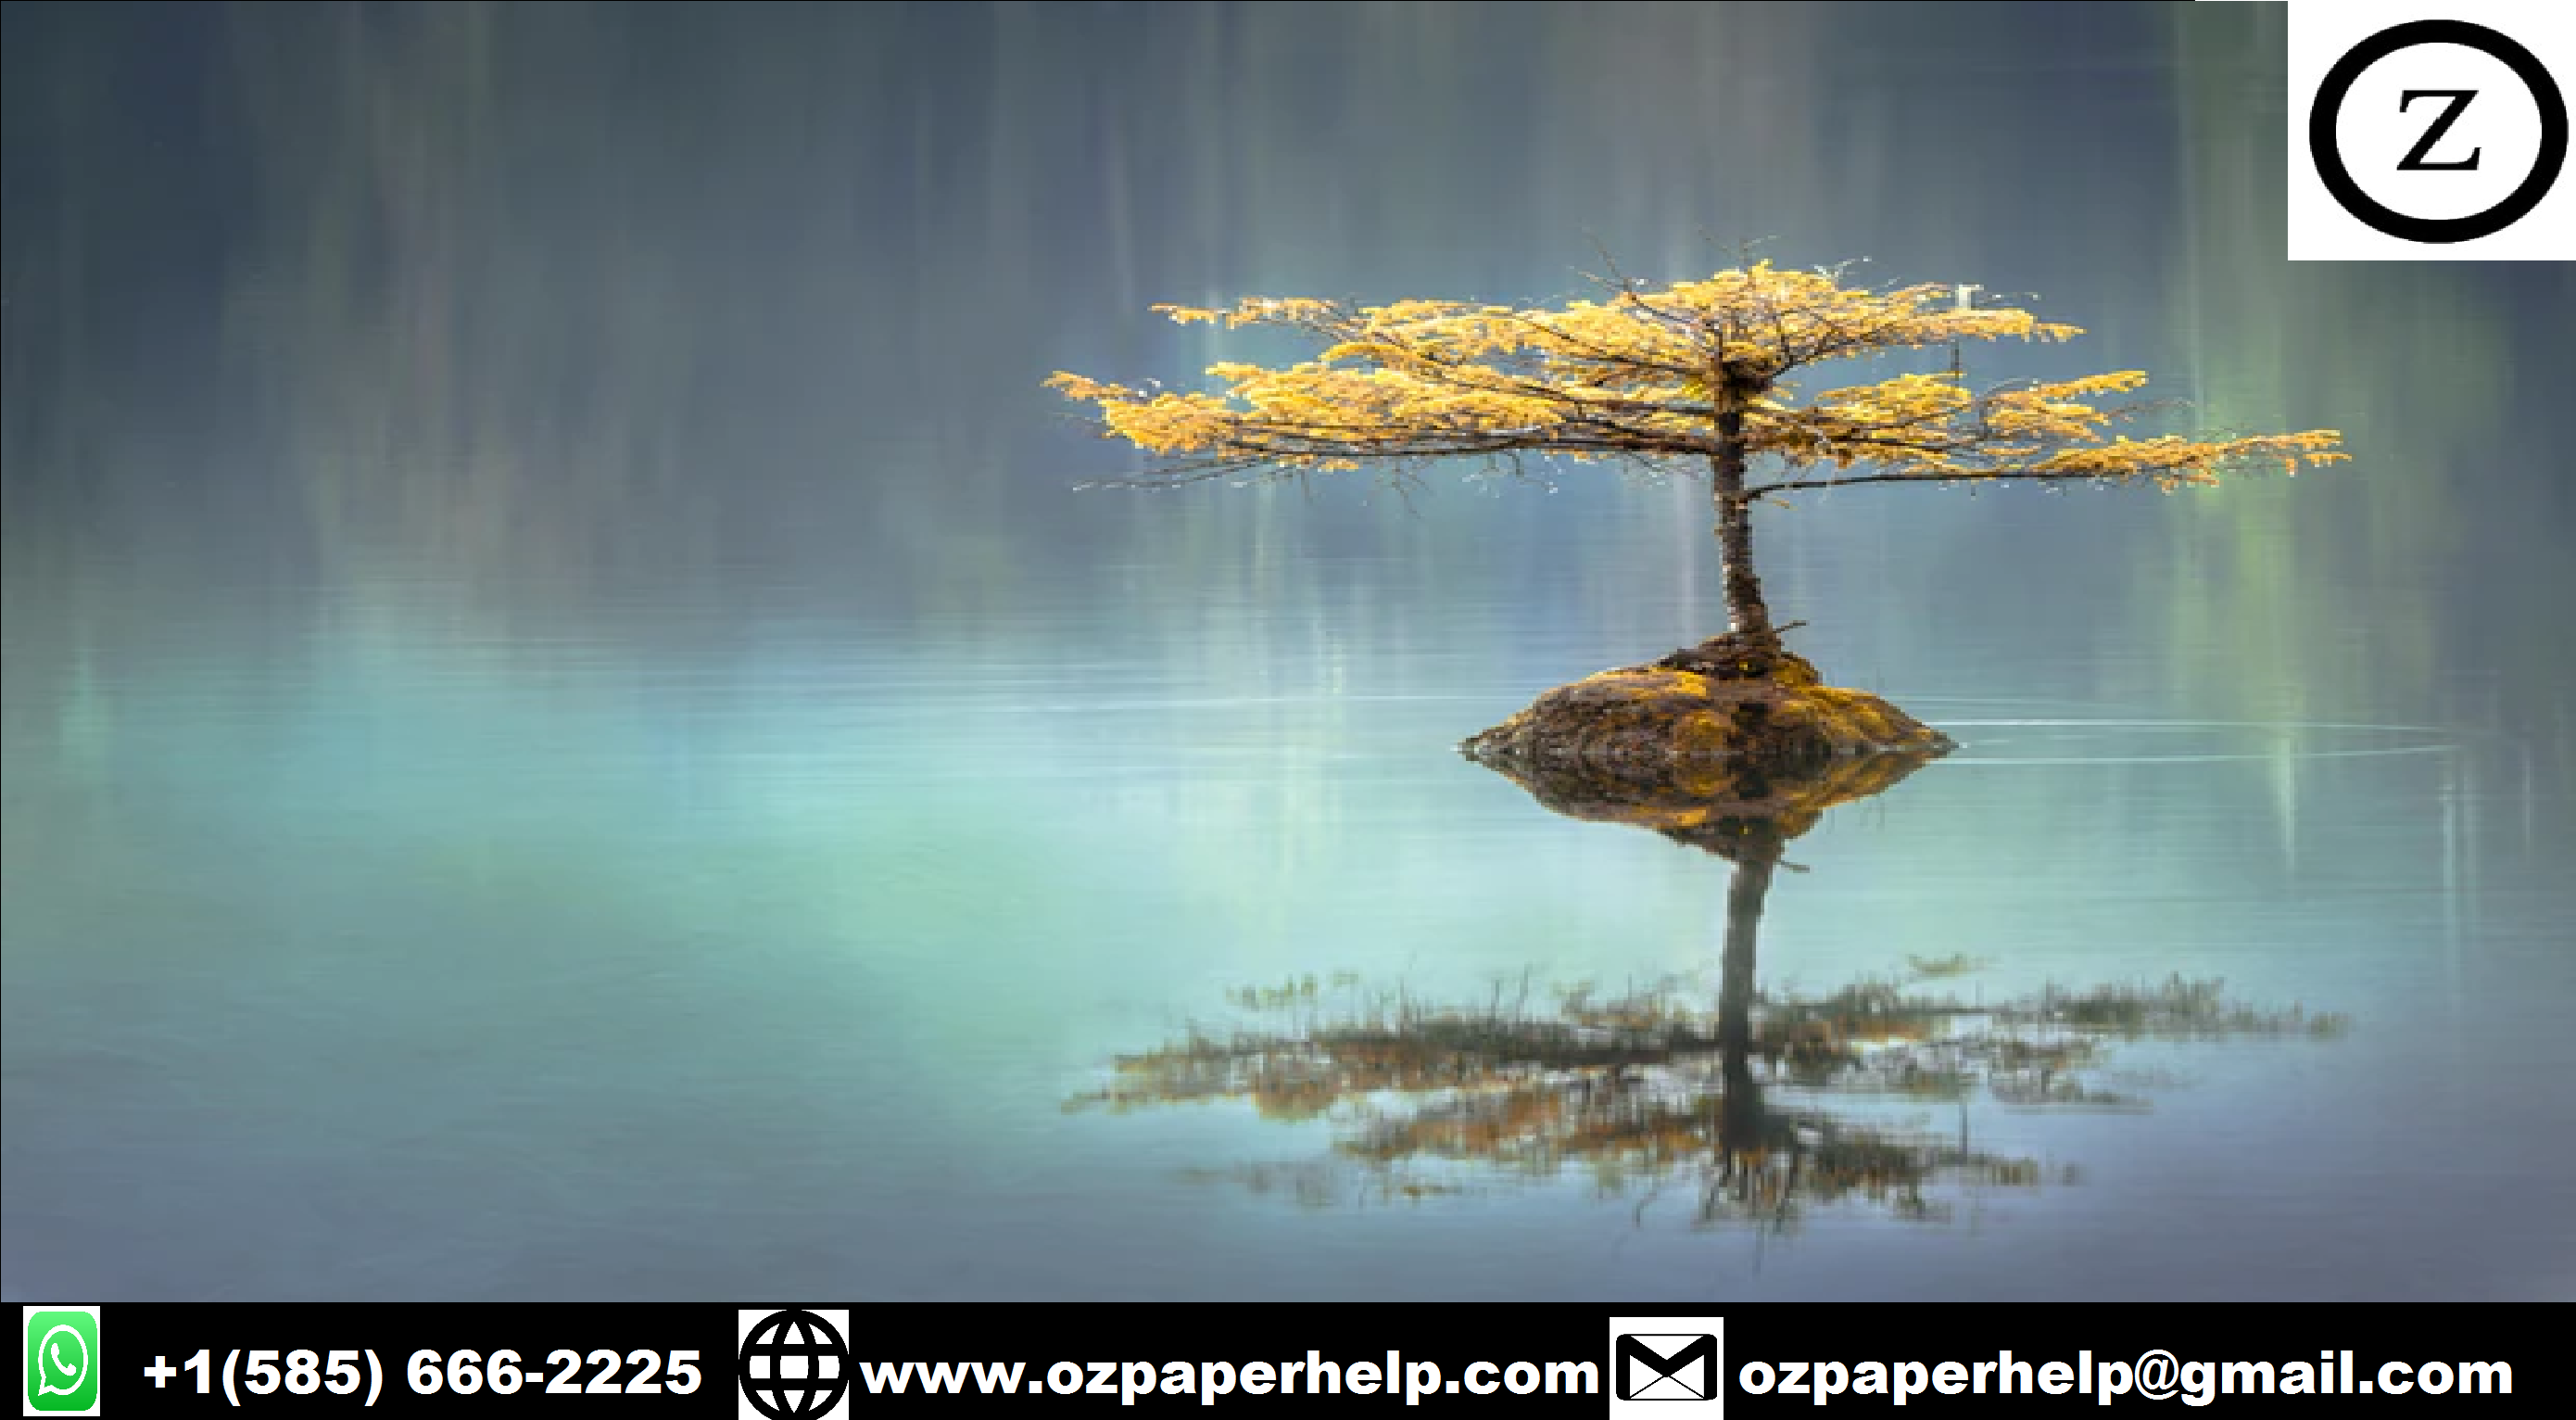 REFLECTIVE WRITING ASSIGNMENT HELP